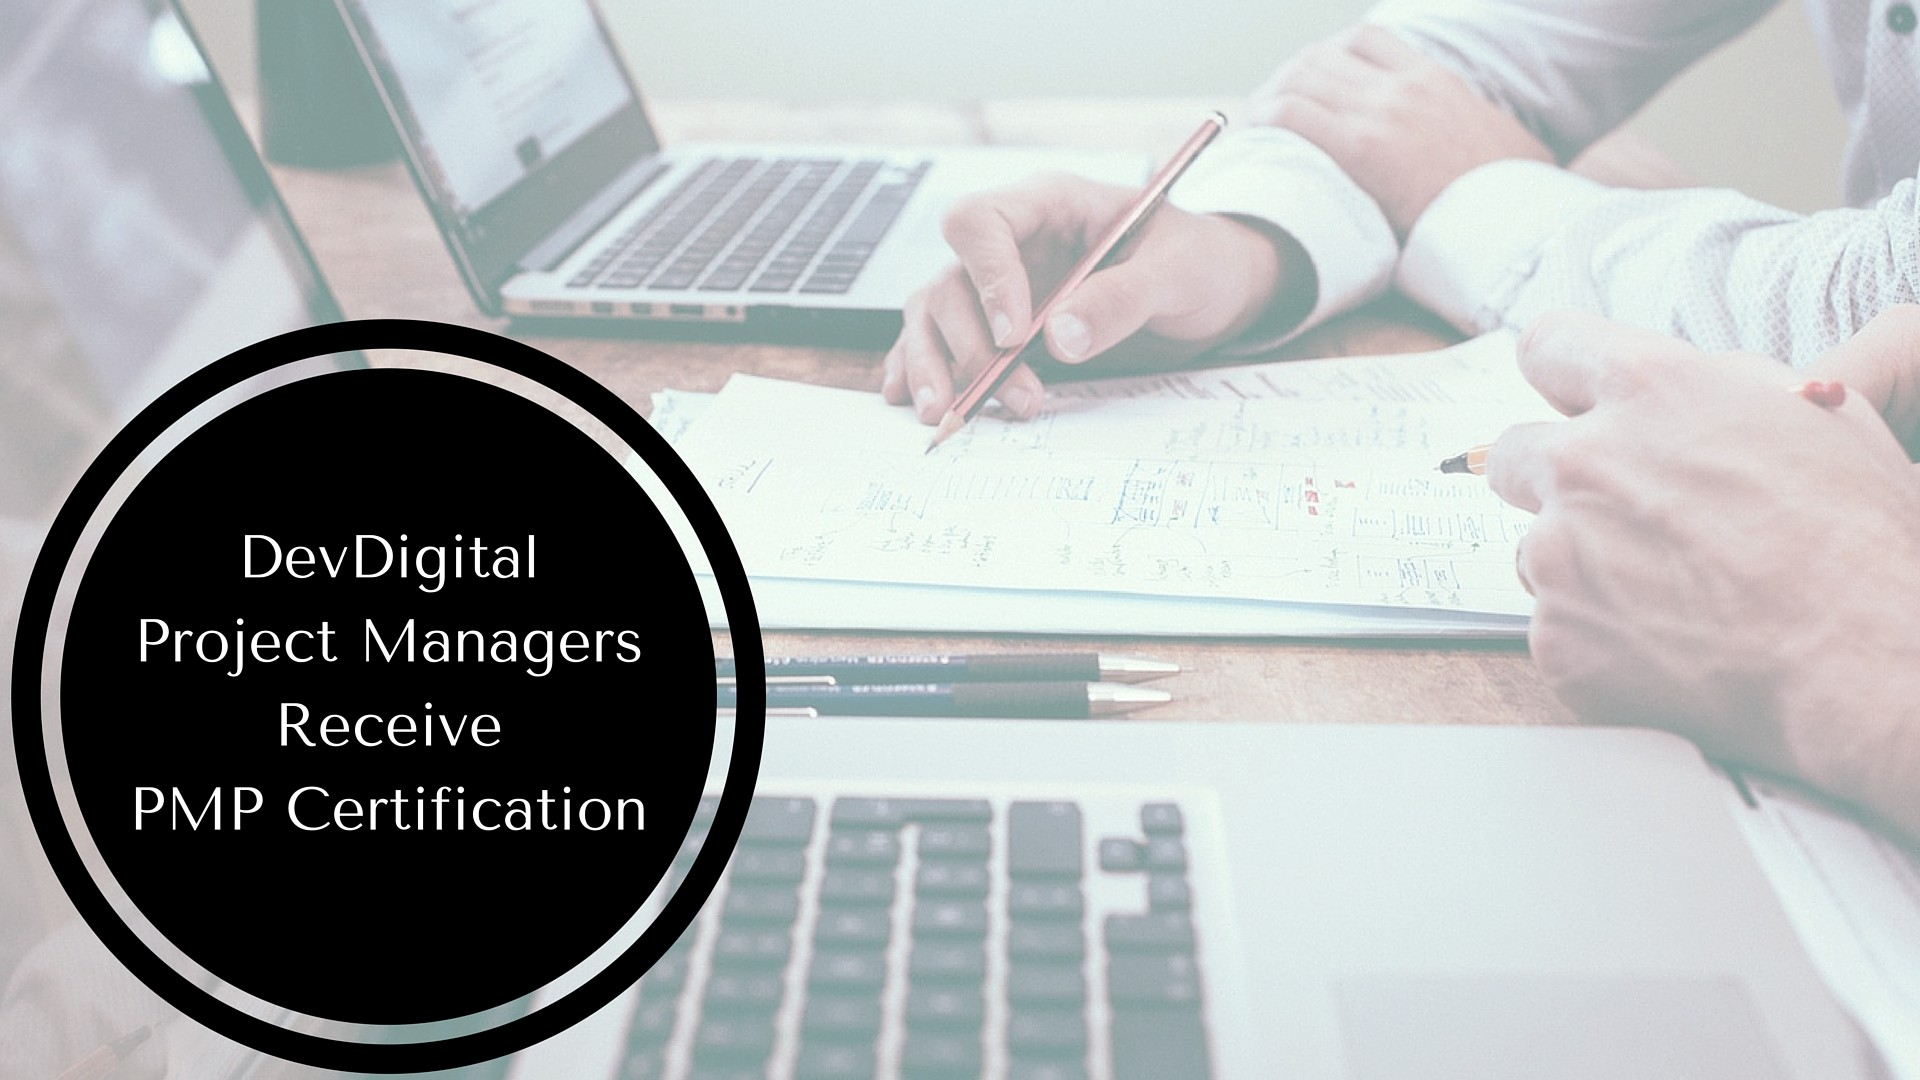 DevDigital Project Managers Receive PMP Certification